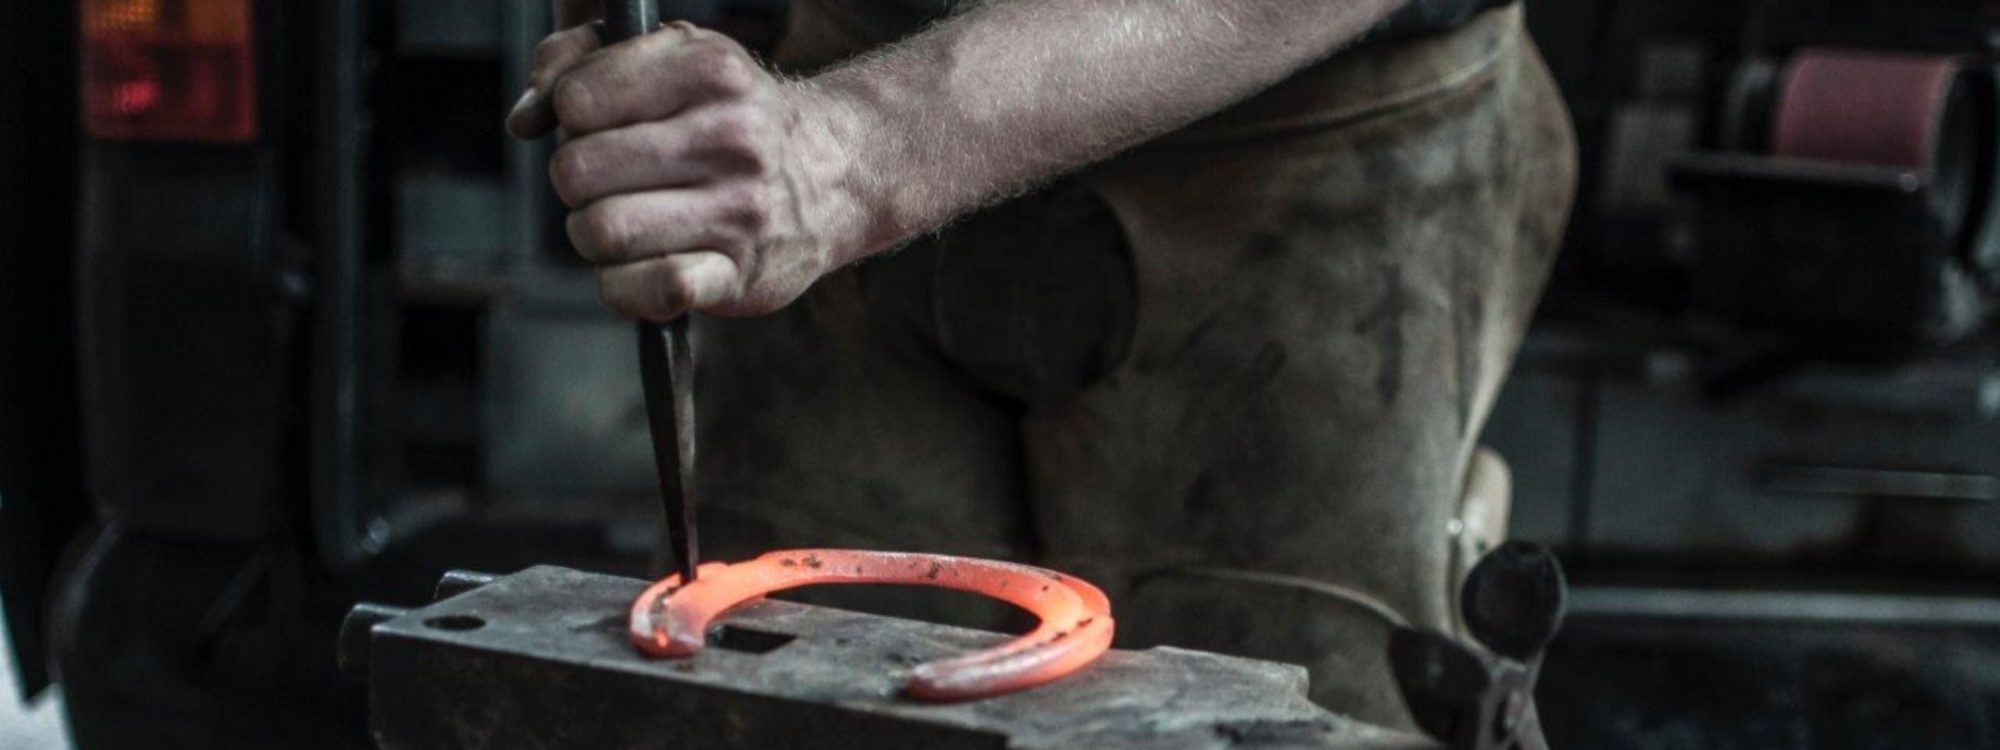 farrier and horse shoe